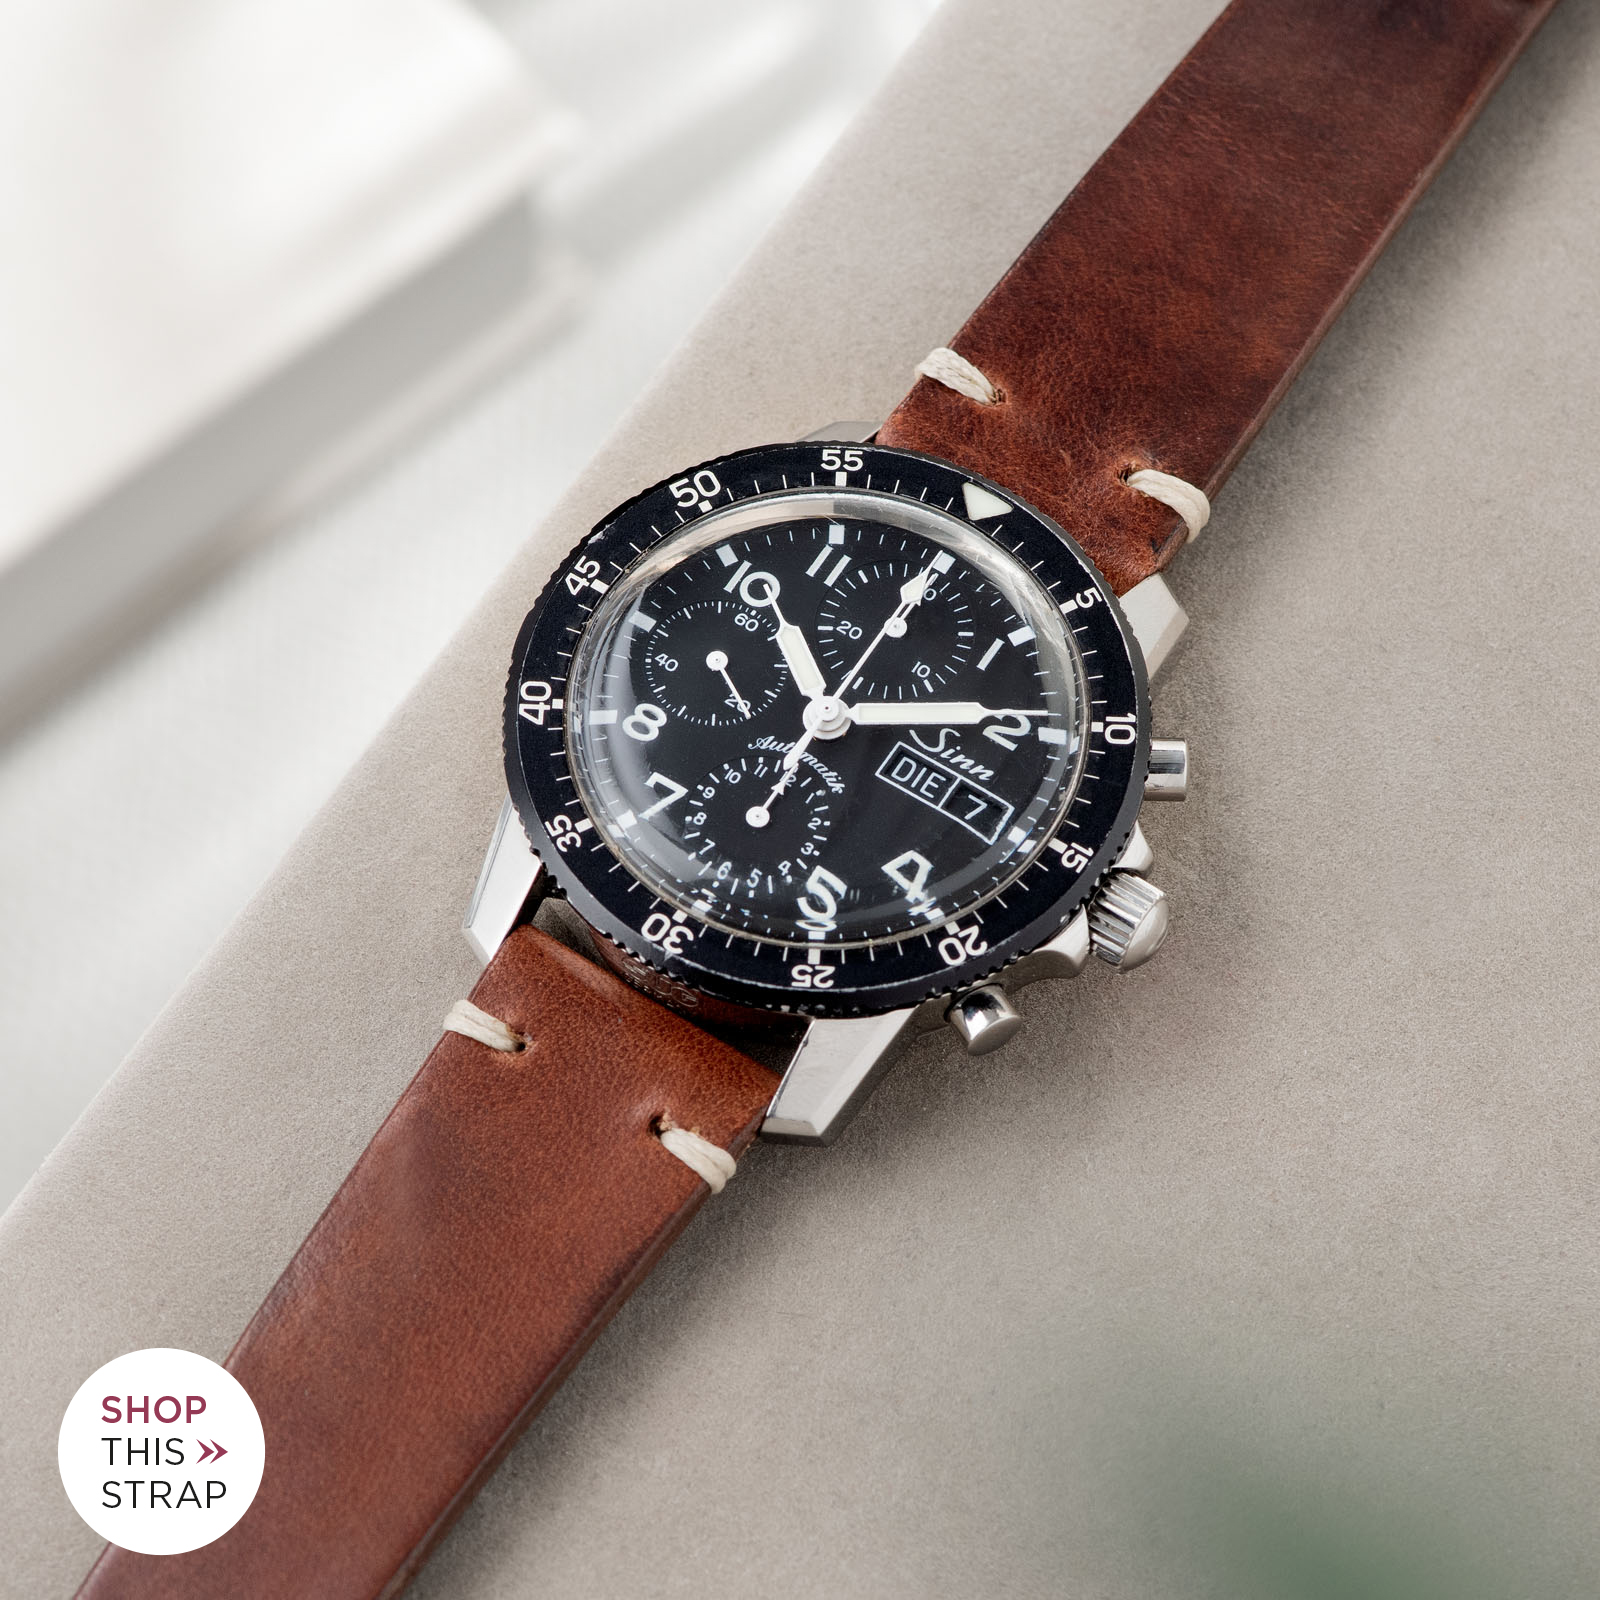 Bulang and Sons_Strap Guide_Sinn 103_Siena Brown Leather Watch Strap